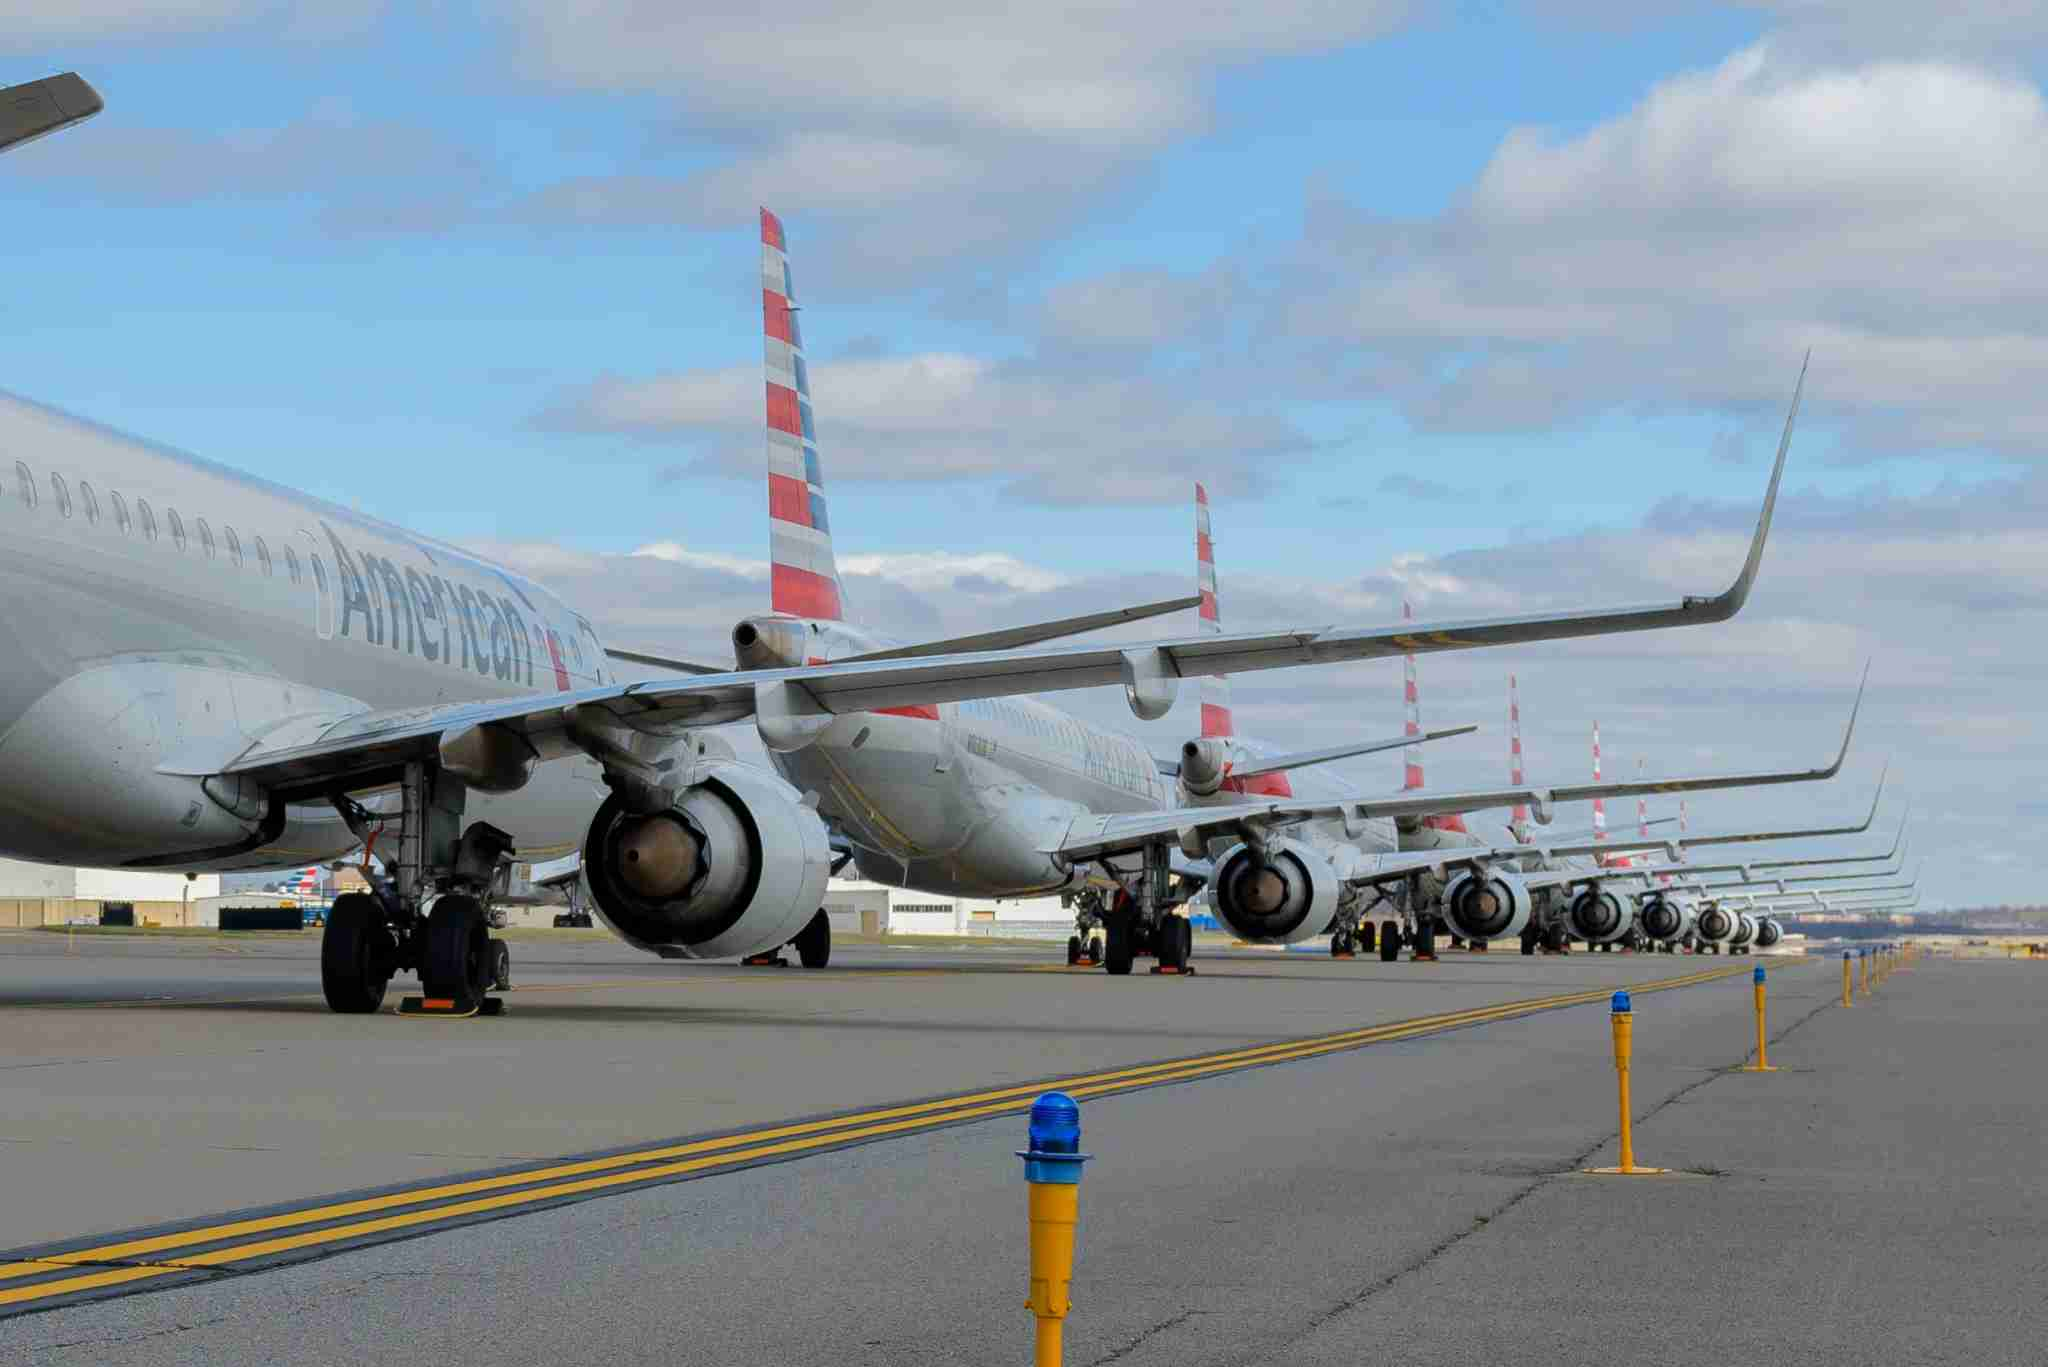 AA parked planes at various locations including Tulsa and Pittsburgh. Photos courtesy American Airlines.